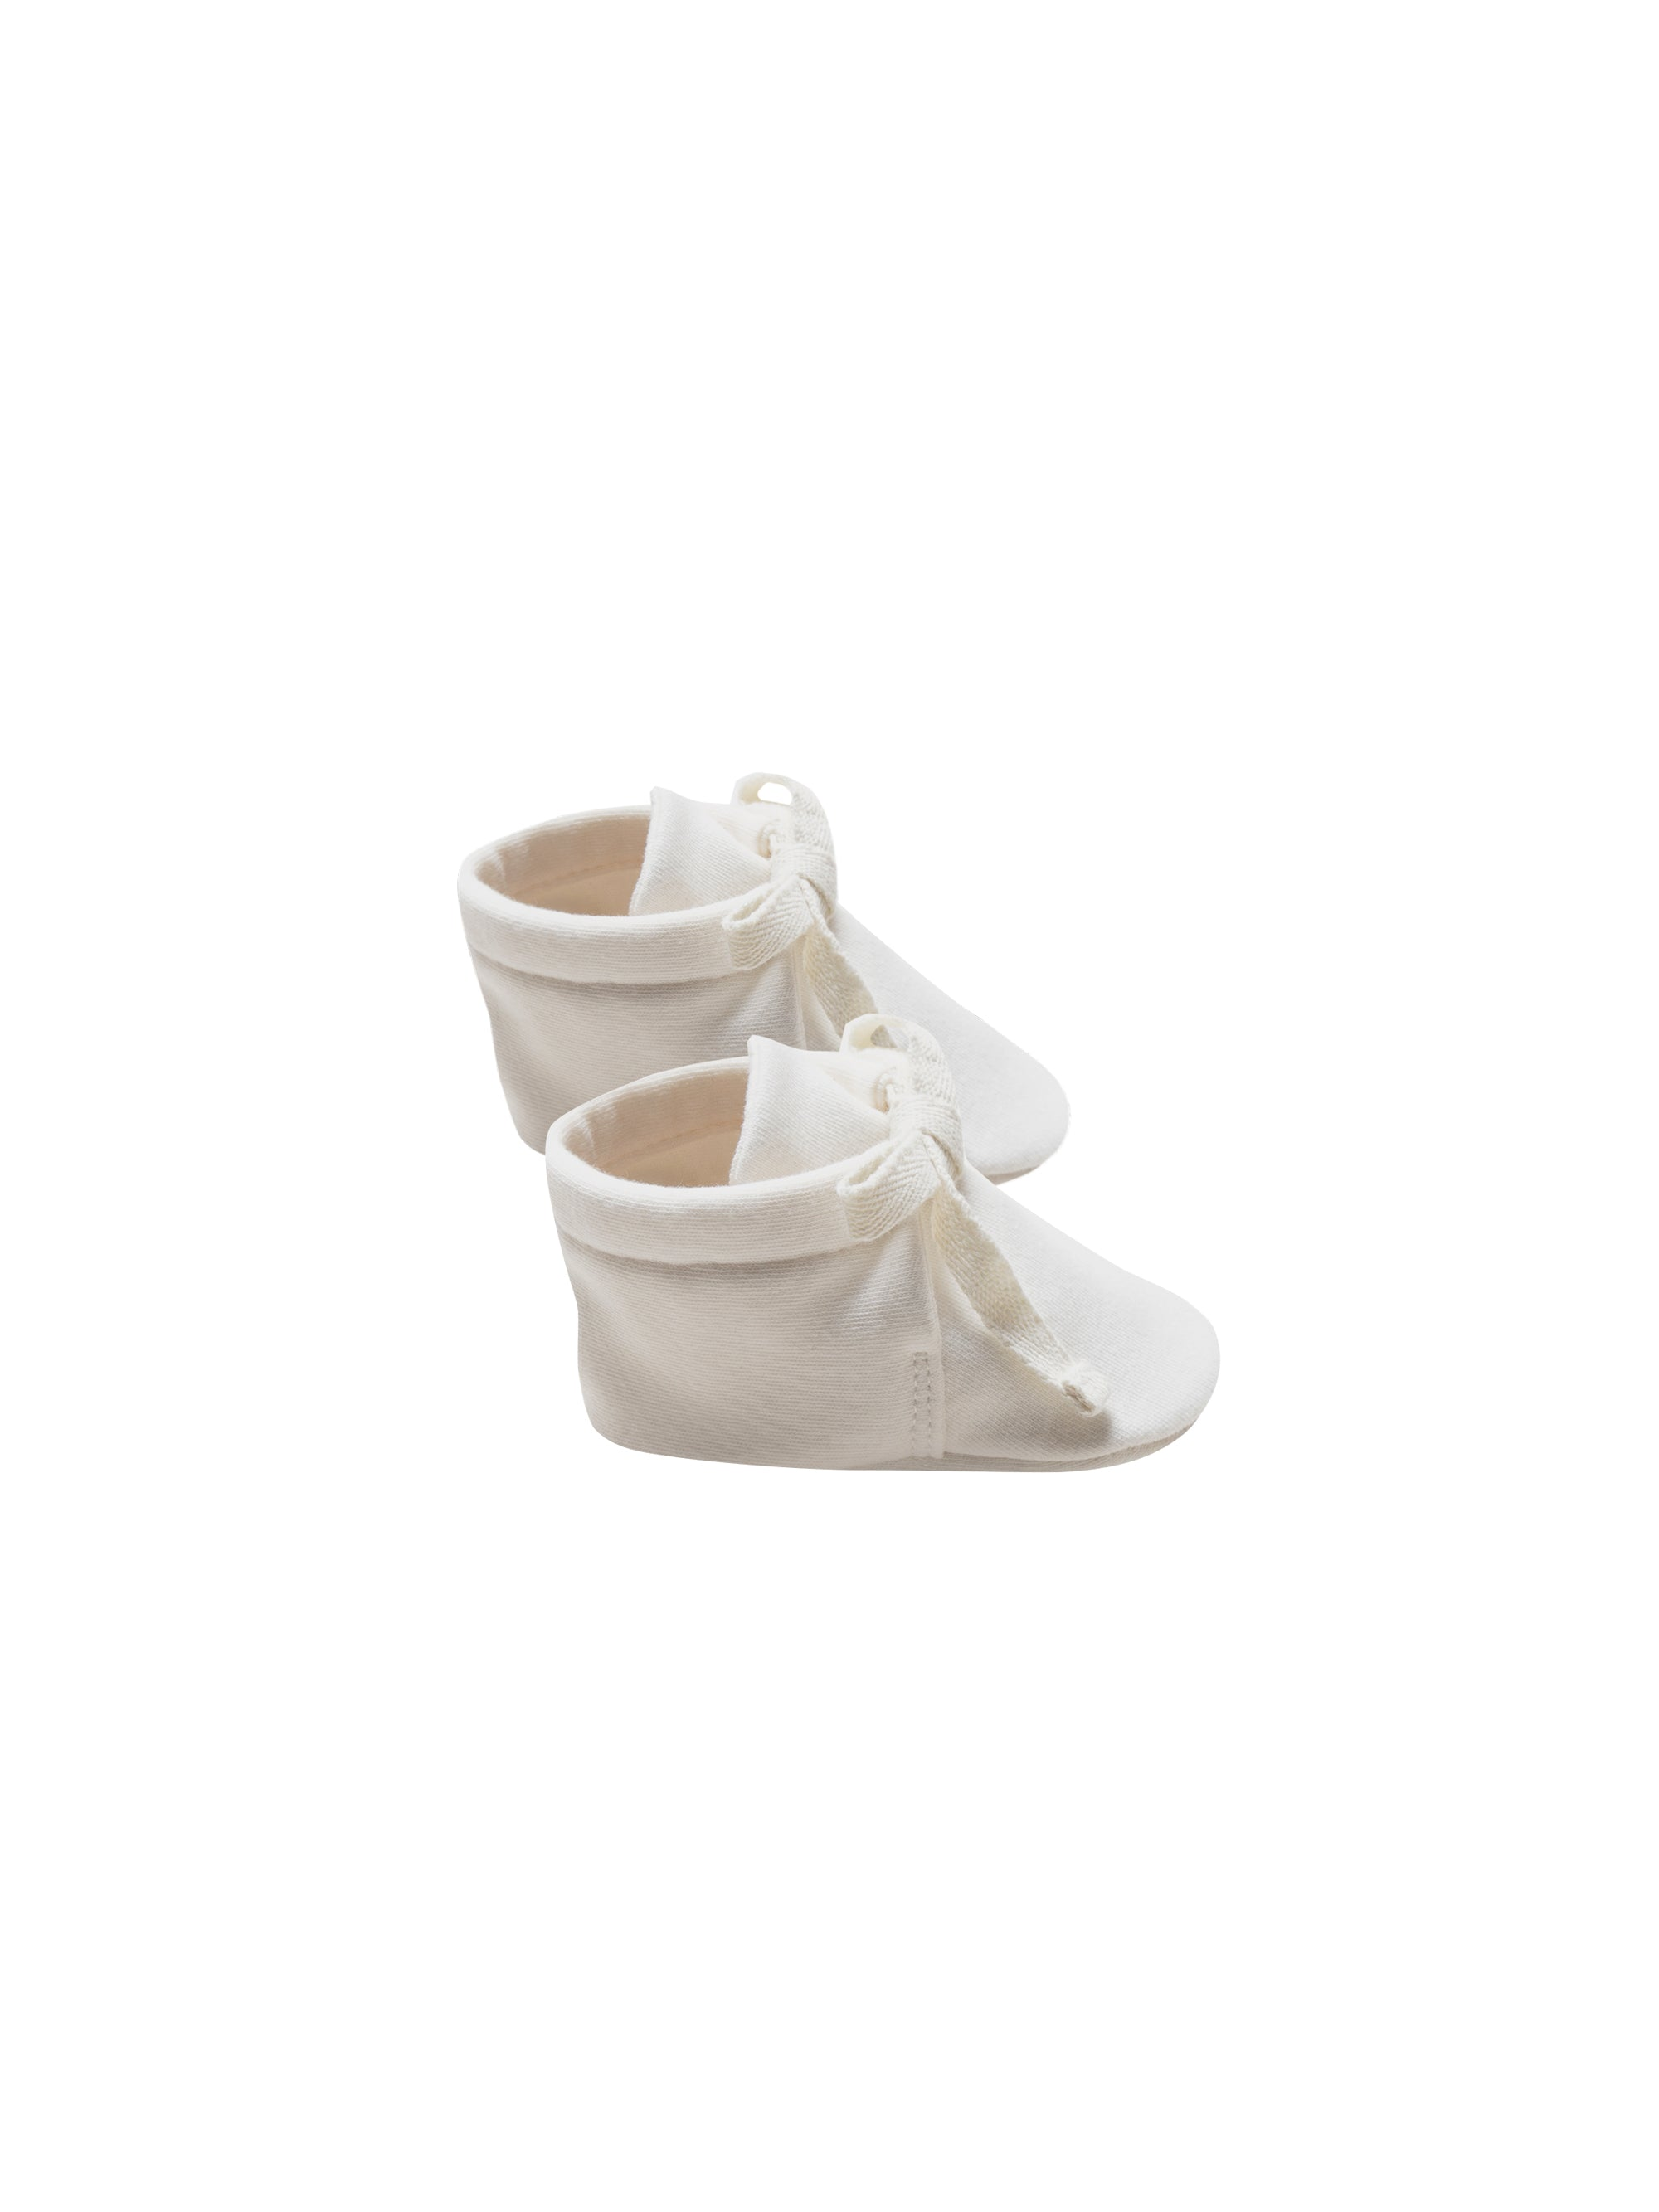 Quincy Mae - Baby Booties (Ivory)